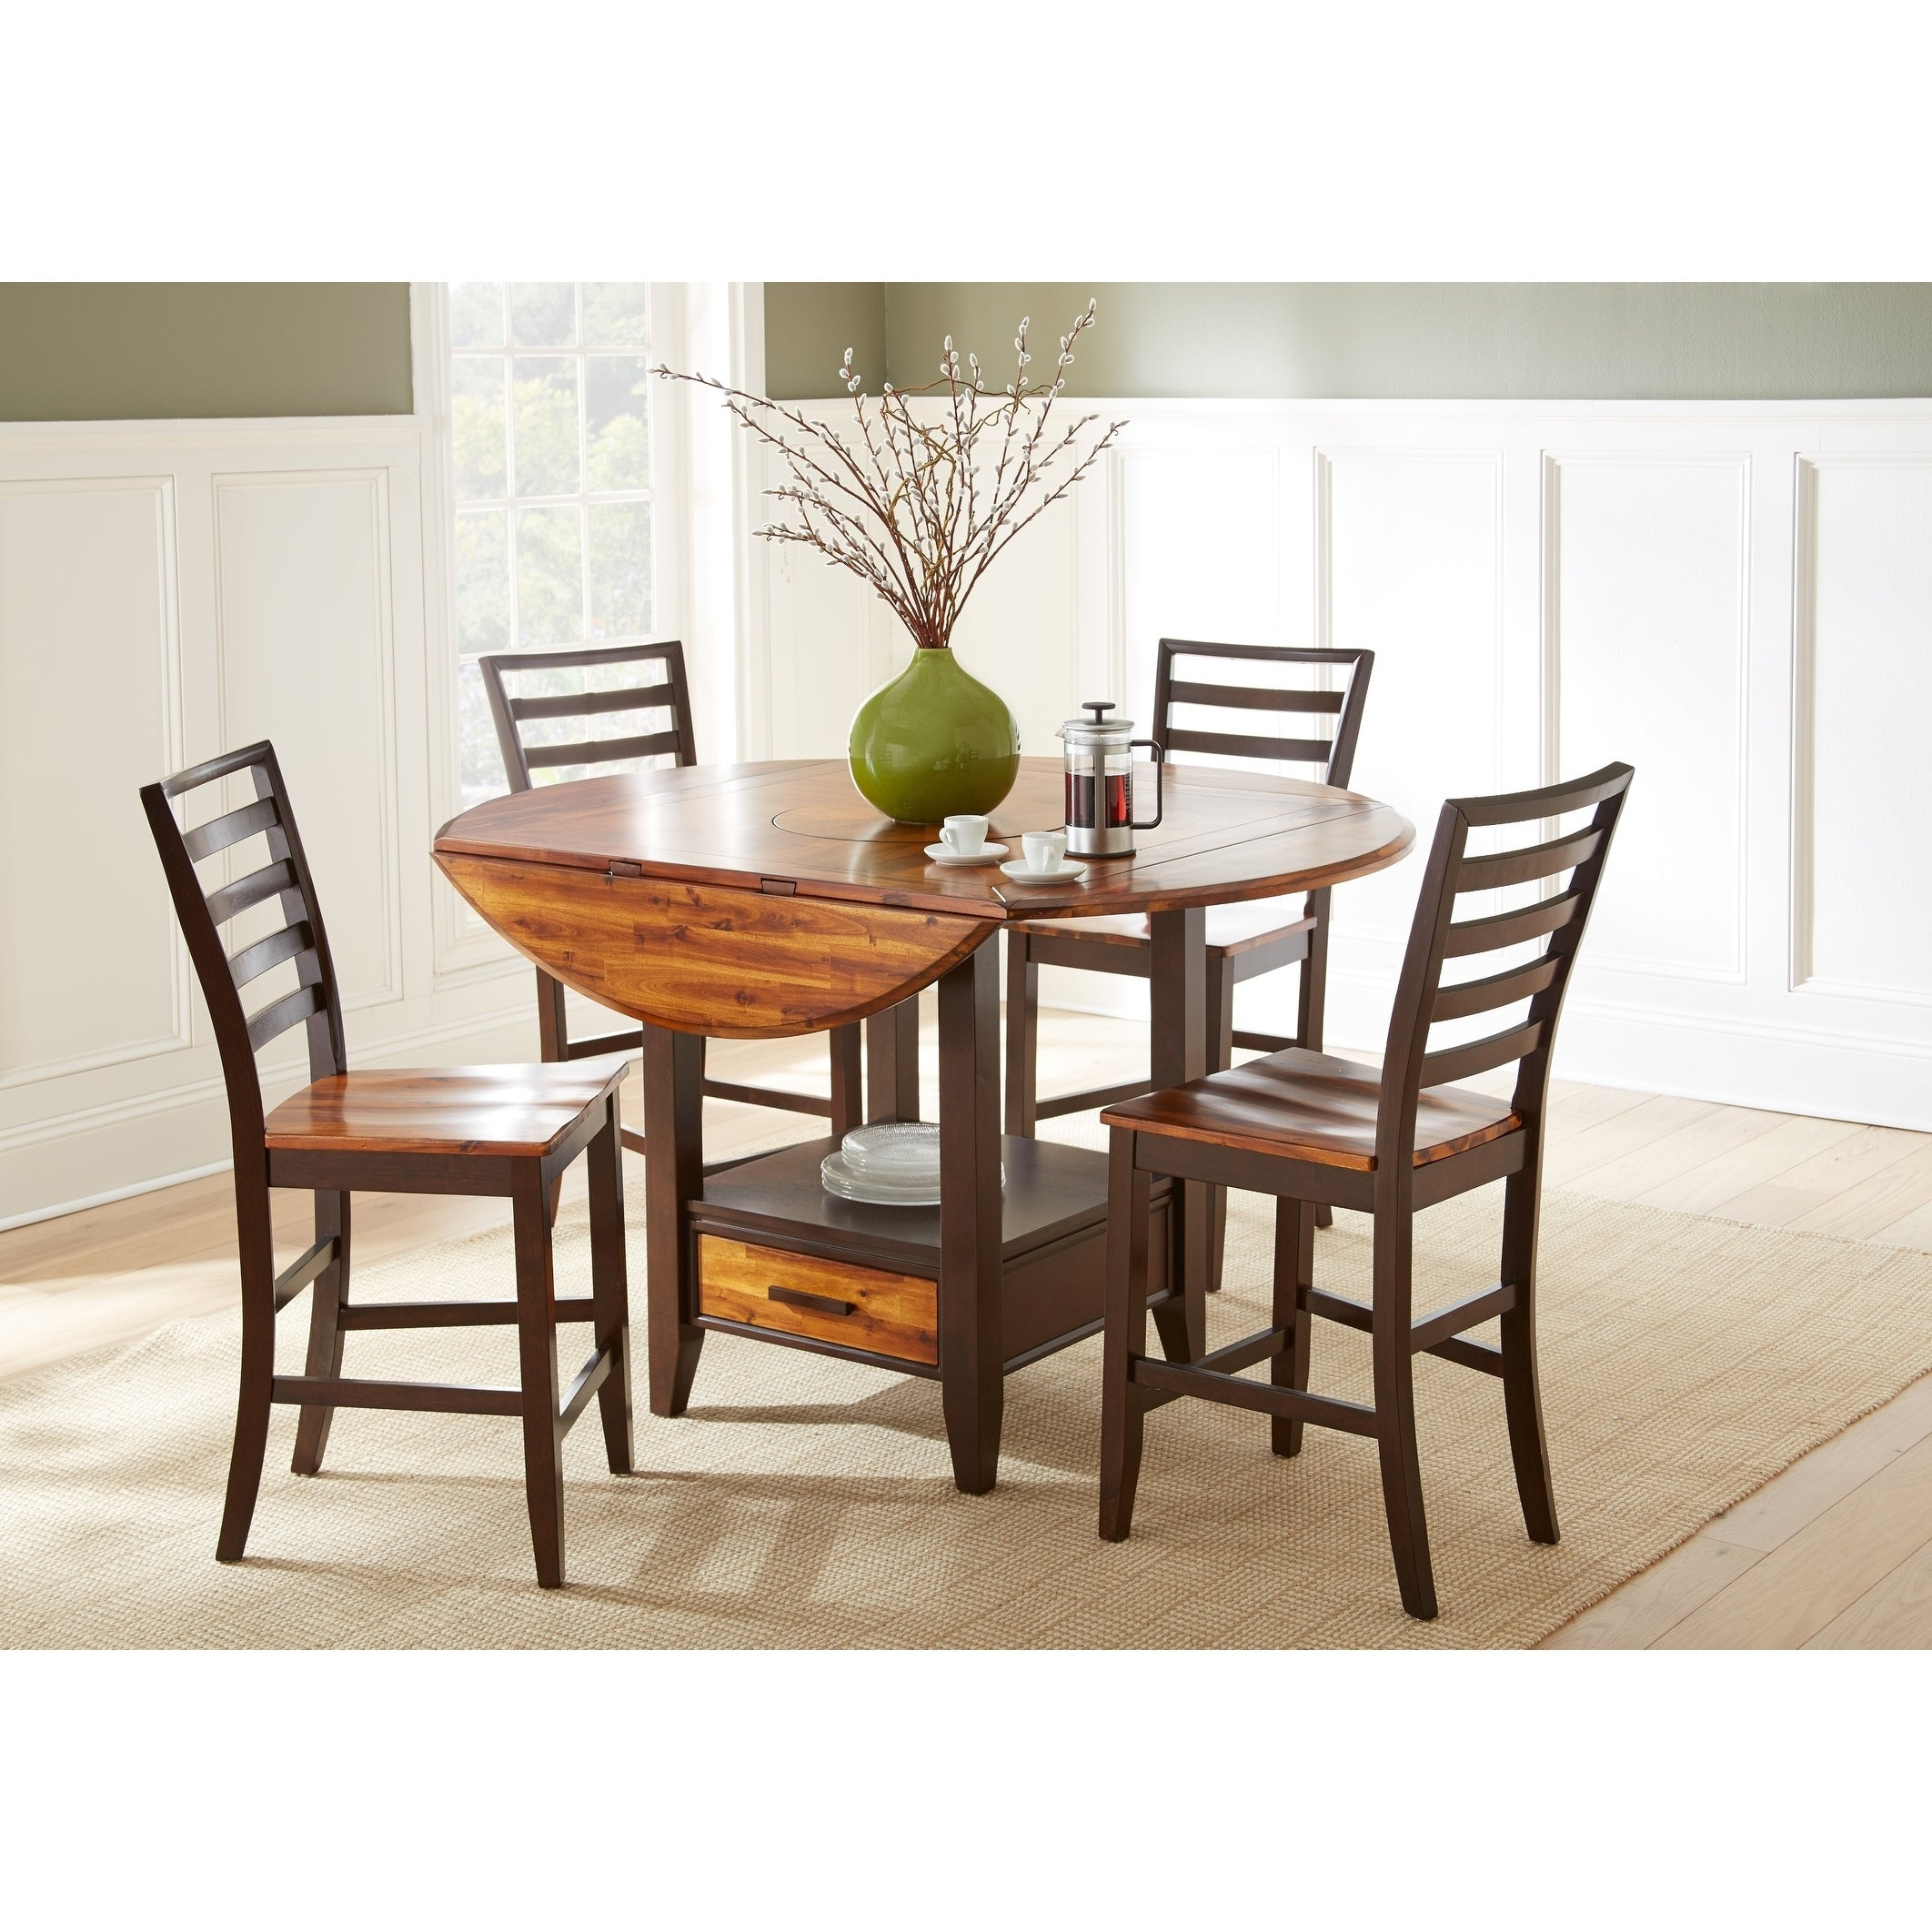 Buy Farmhouse Kitchen & Dining Room Sets Online At Overstock | Our Regarding Current Falmer 3 Piece Solid Wood Dining Sets (Image 4 of 20)